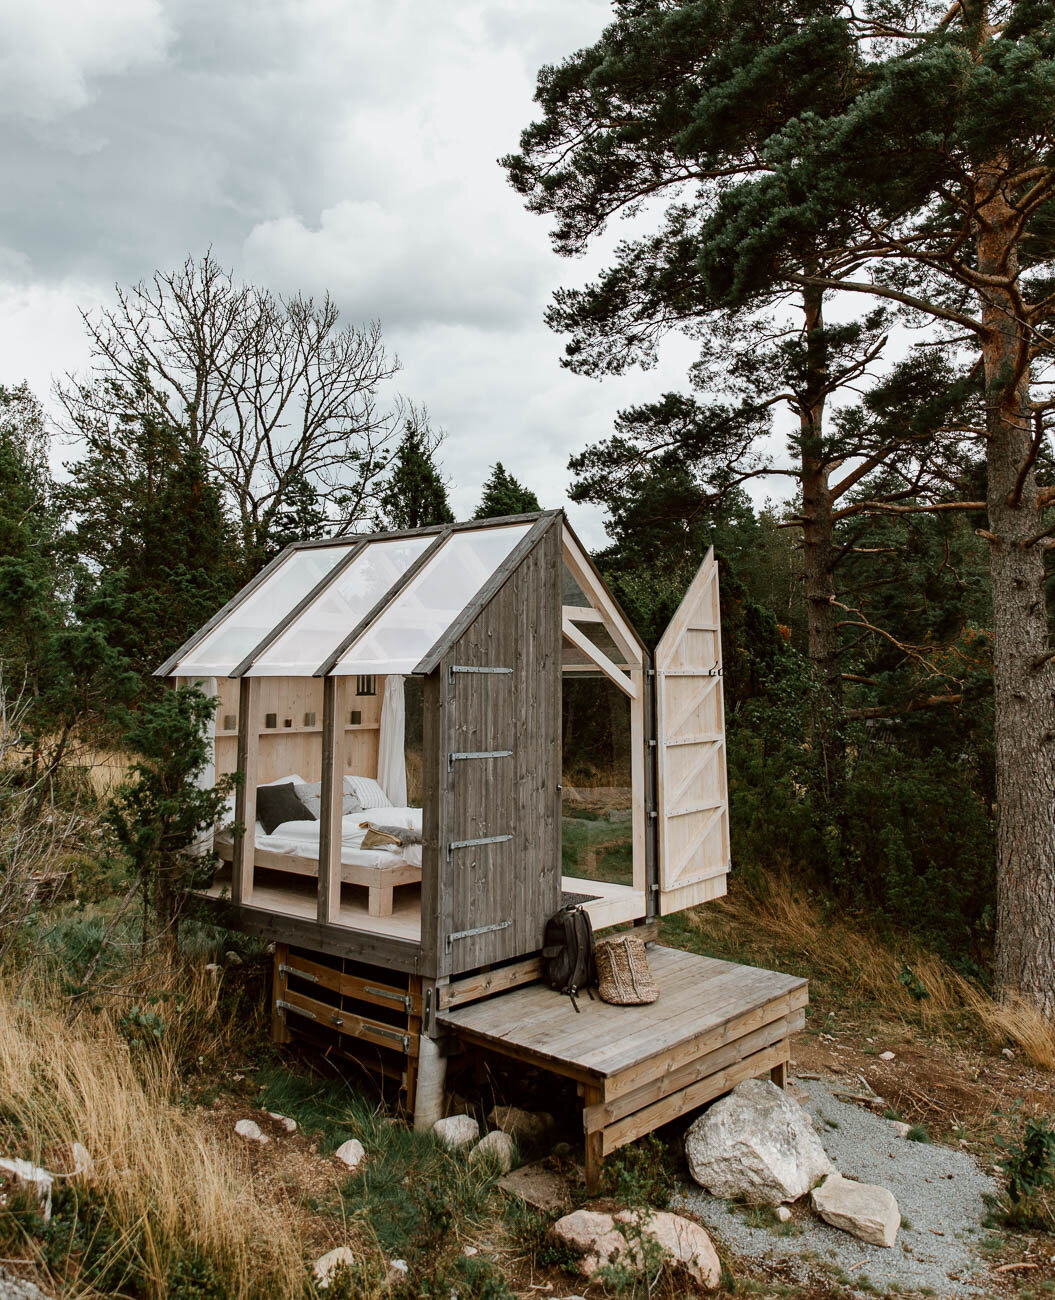 Glass Cabins in the Forest, Sweden - Along Dusty Roads